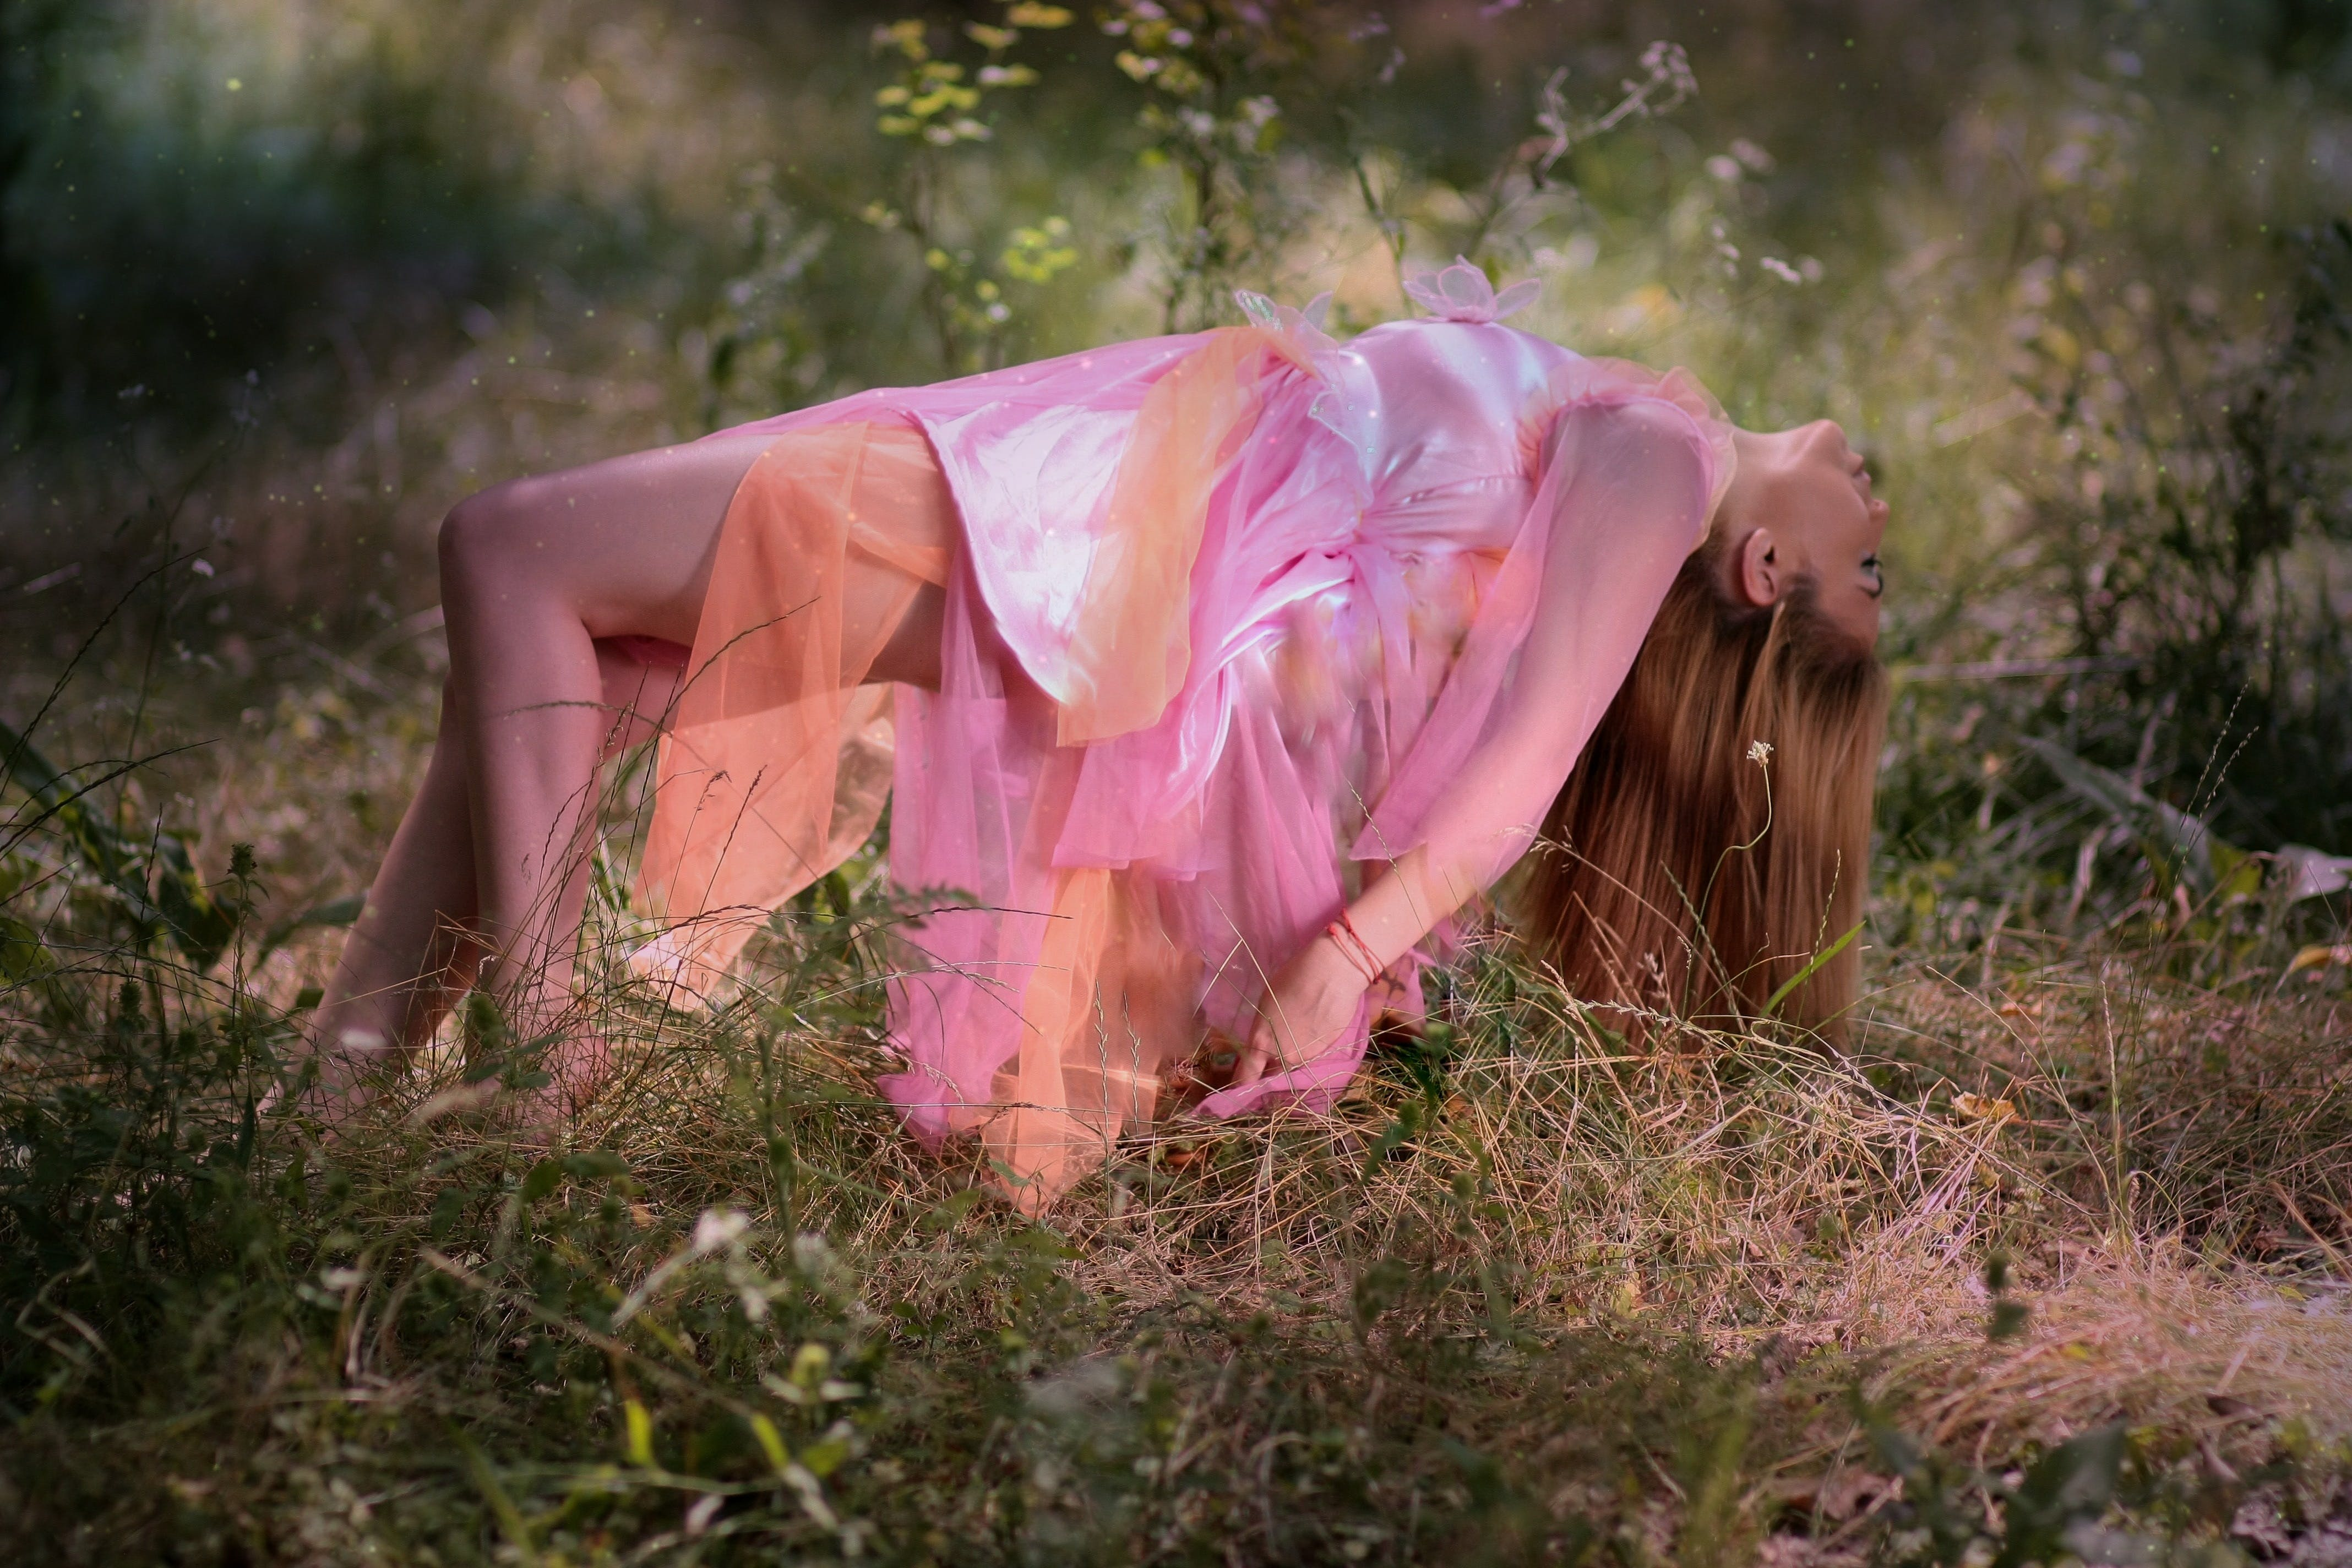 Woman Wearing Pink and Orange Dress While Lying on Grass Field